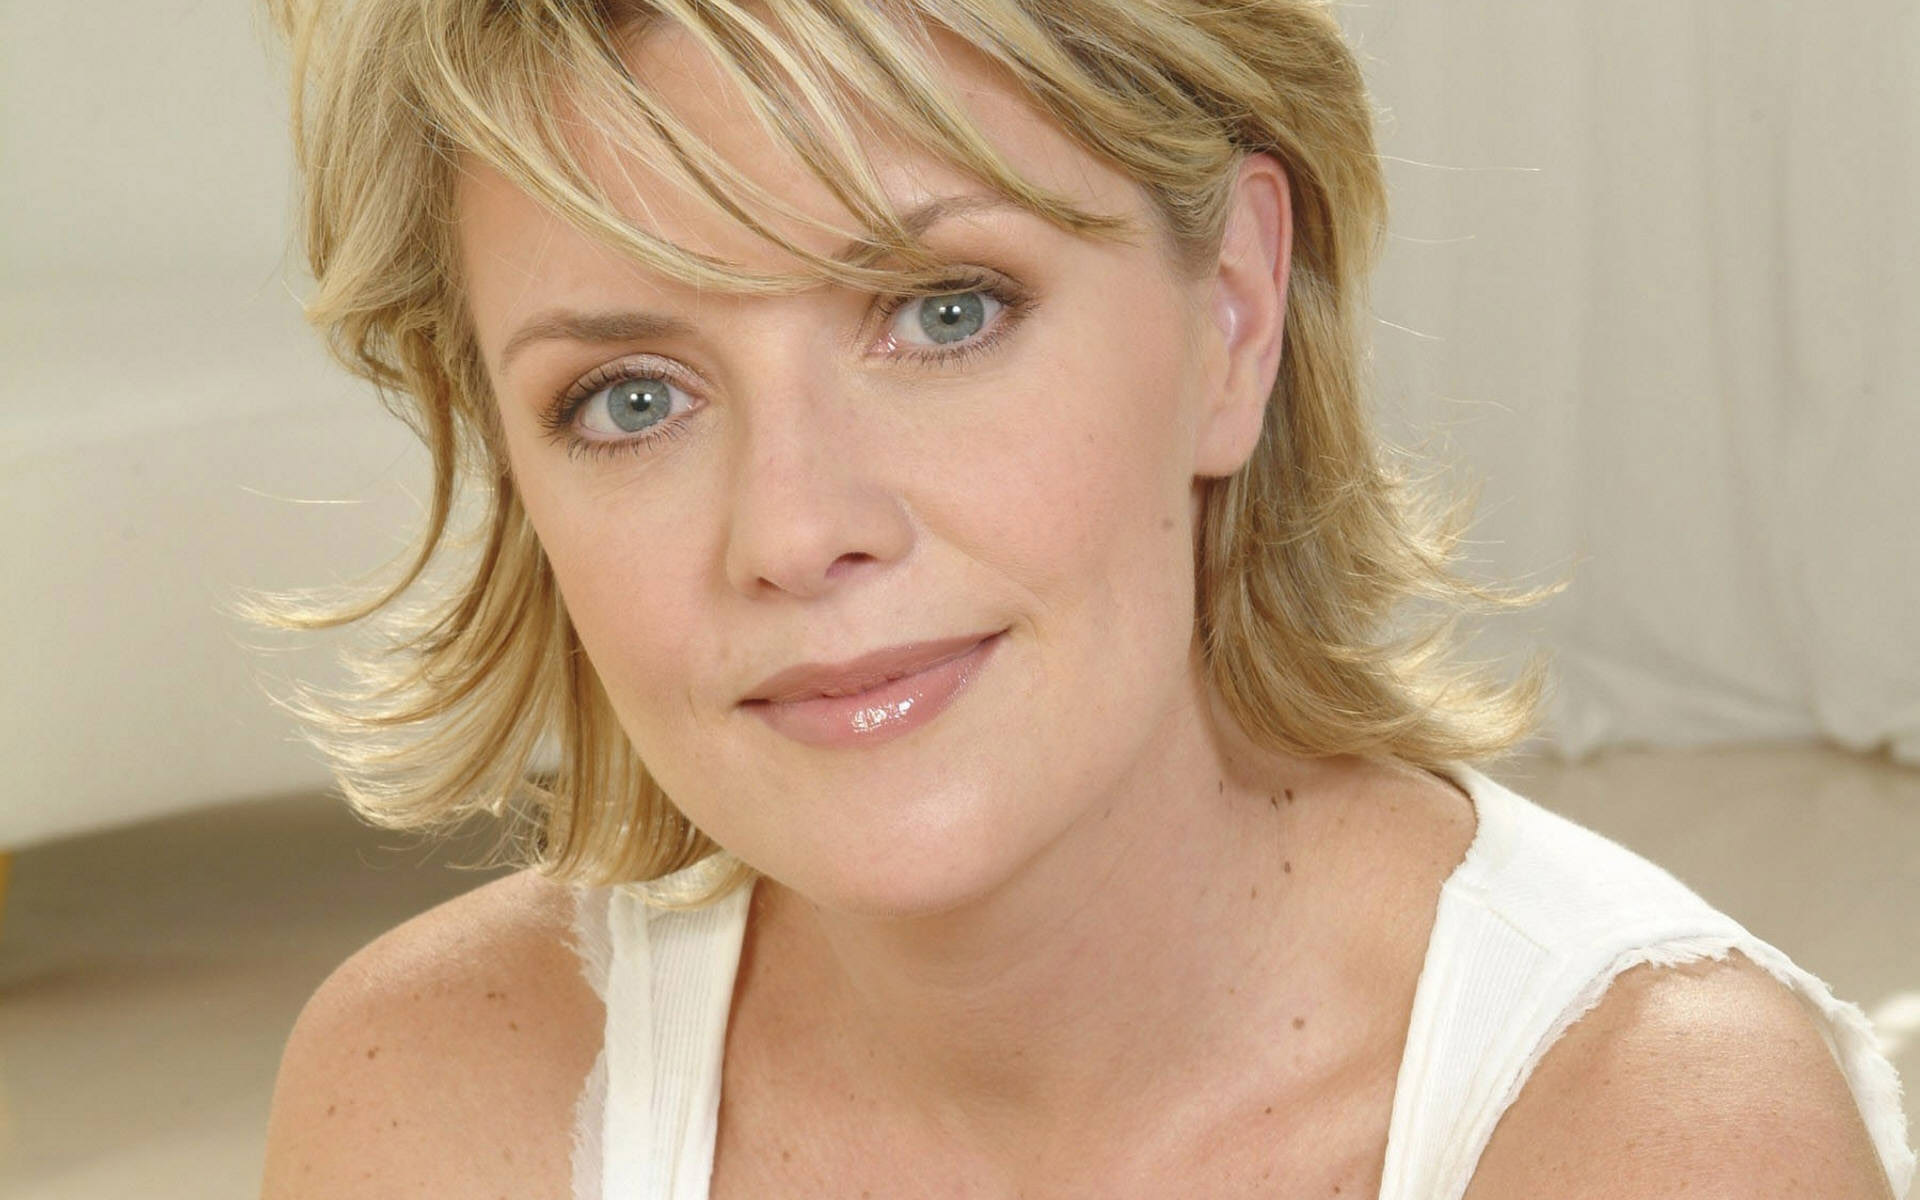 amanda tapping face wallpaper 61194